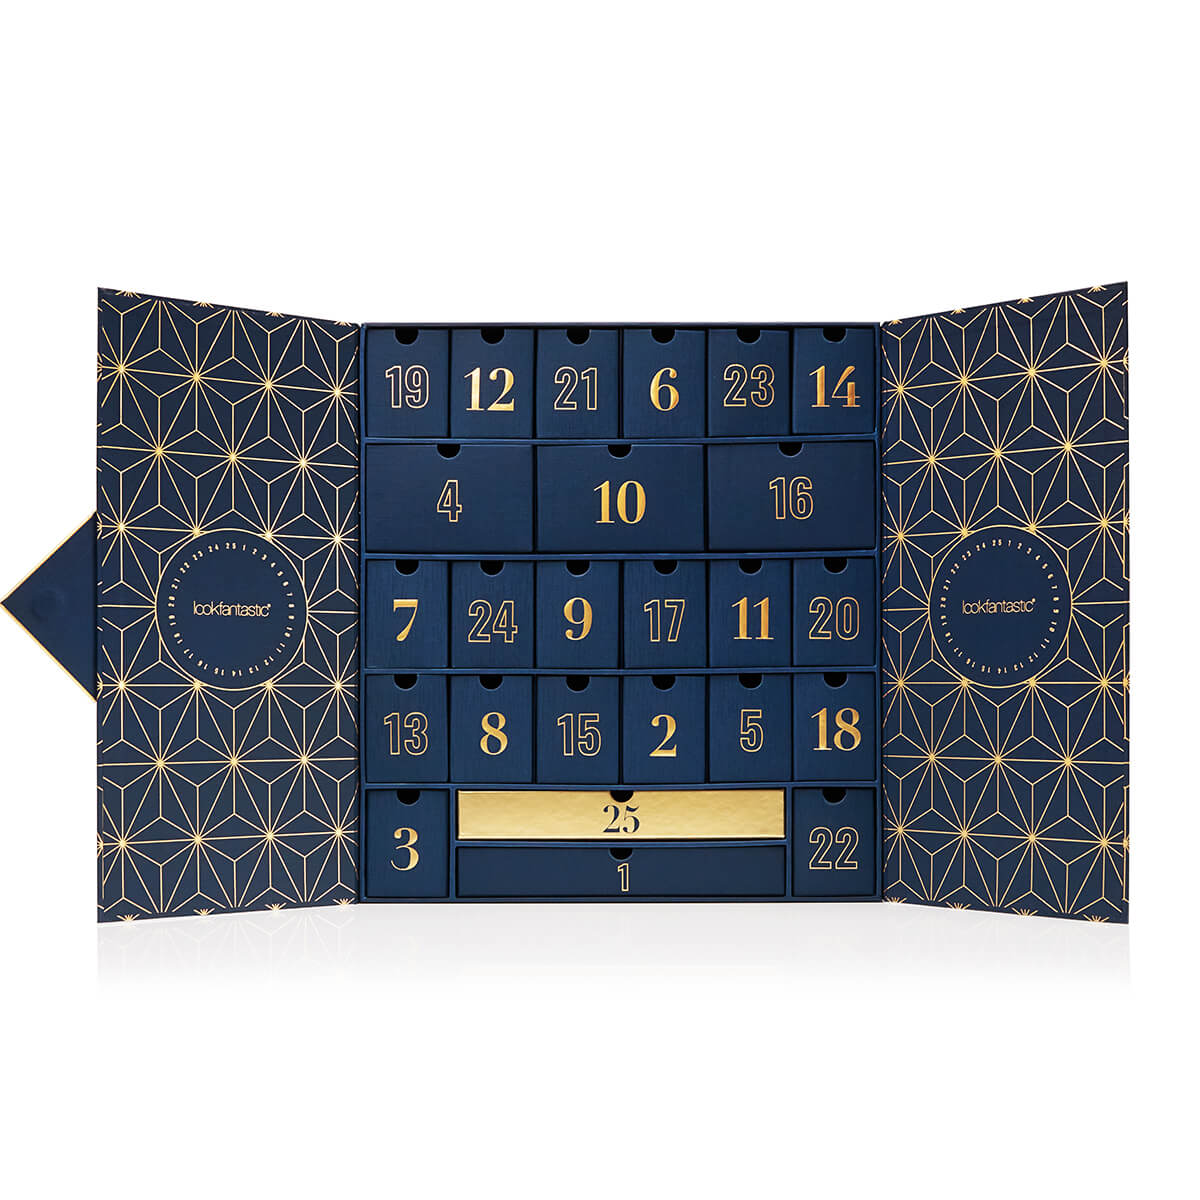 lookfantastic Advent Calendar 2019 (Worth Over £420)